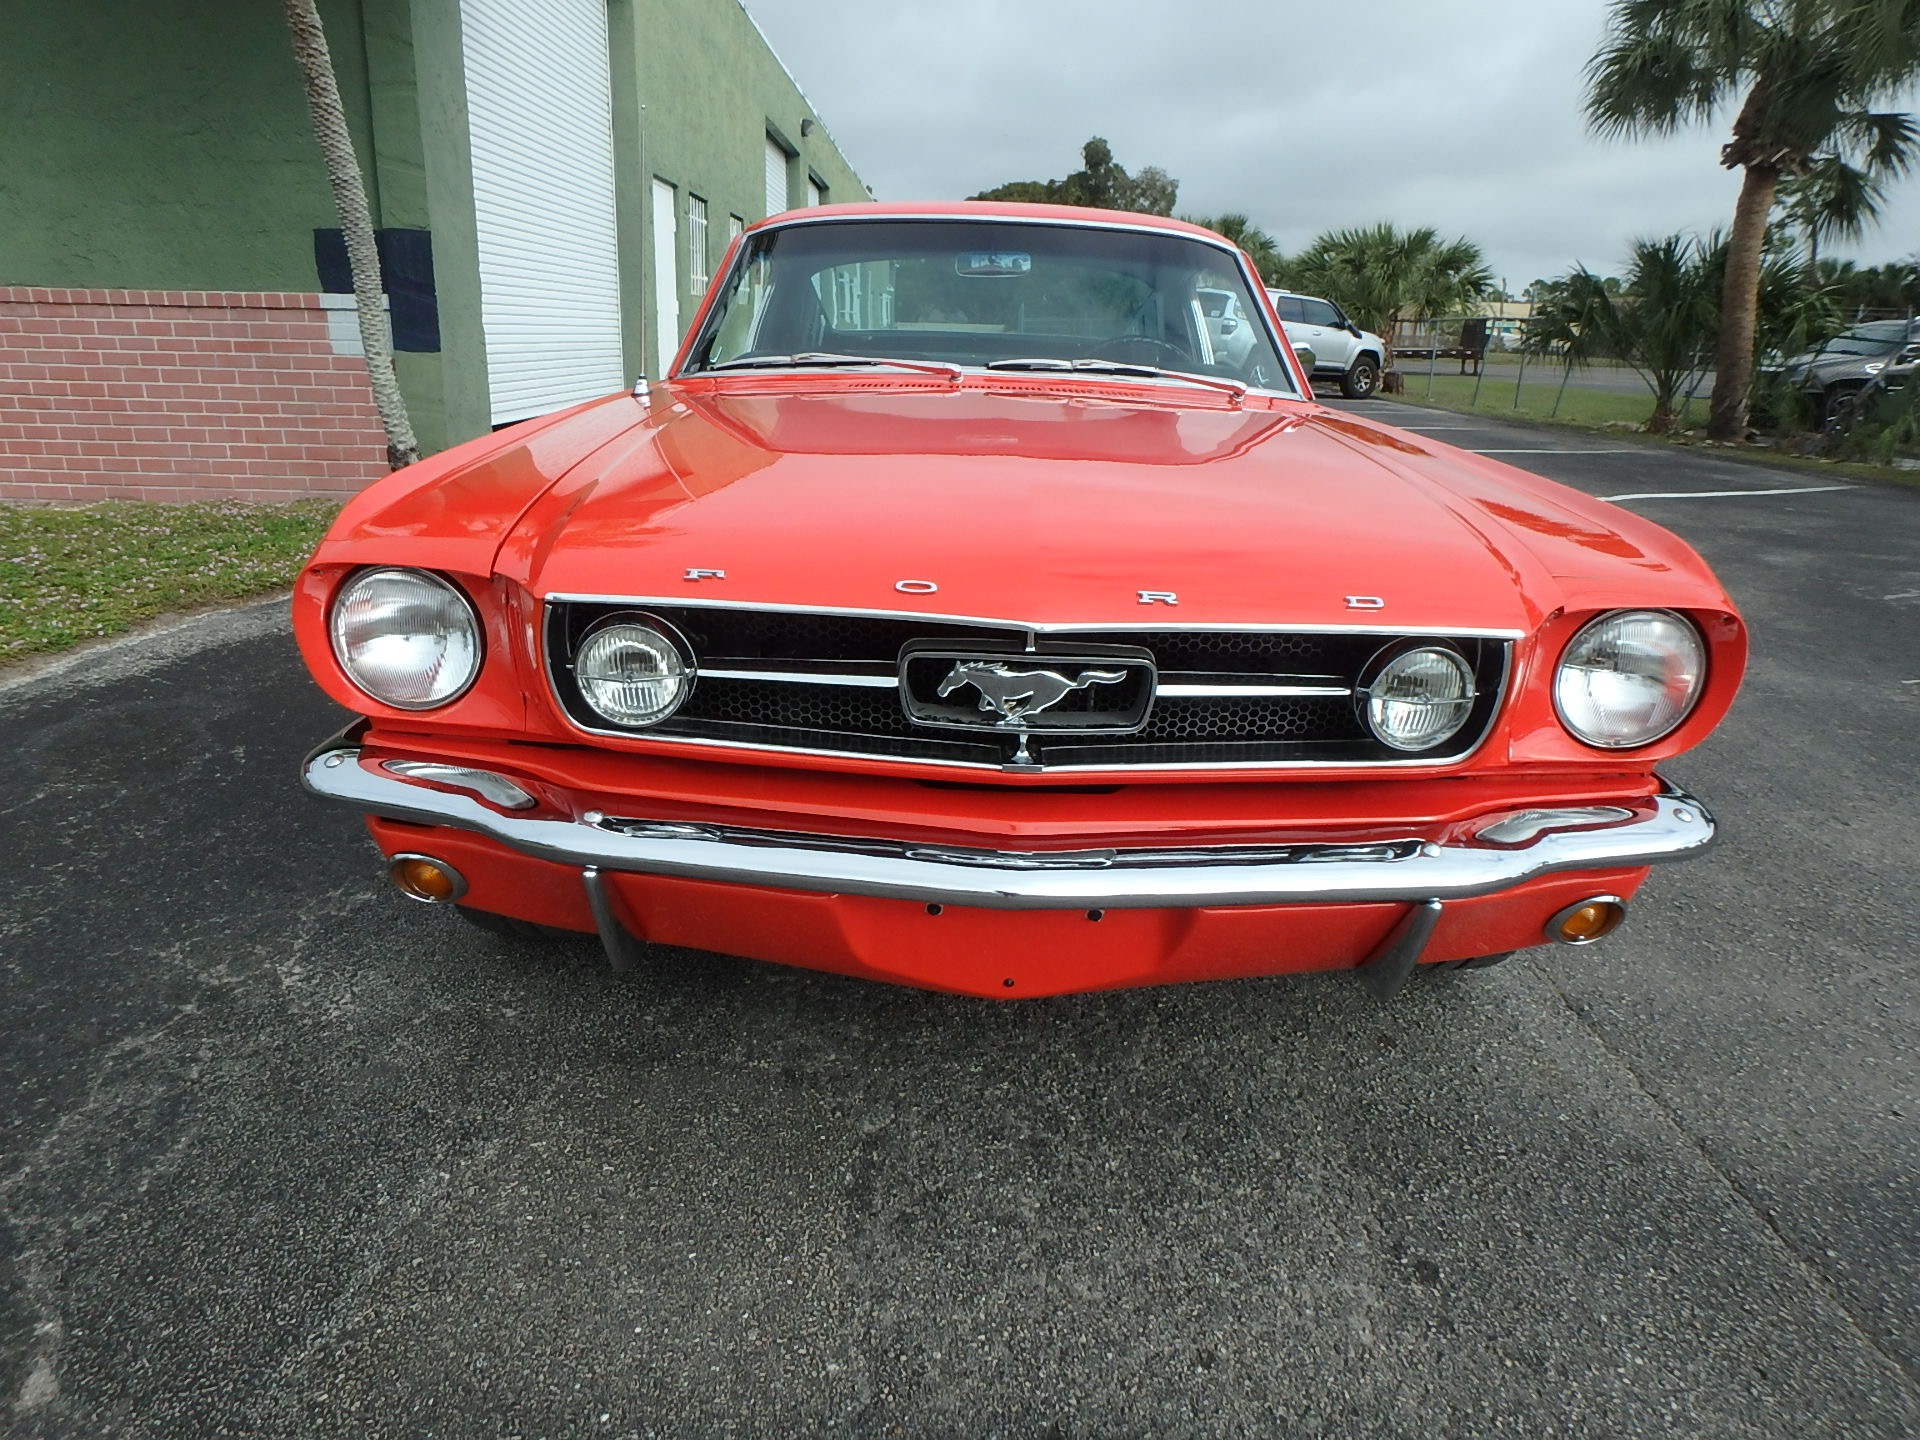 Used 1965 Ford Mustang Fastback 2x2